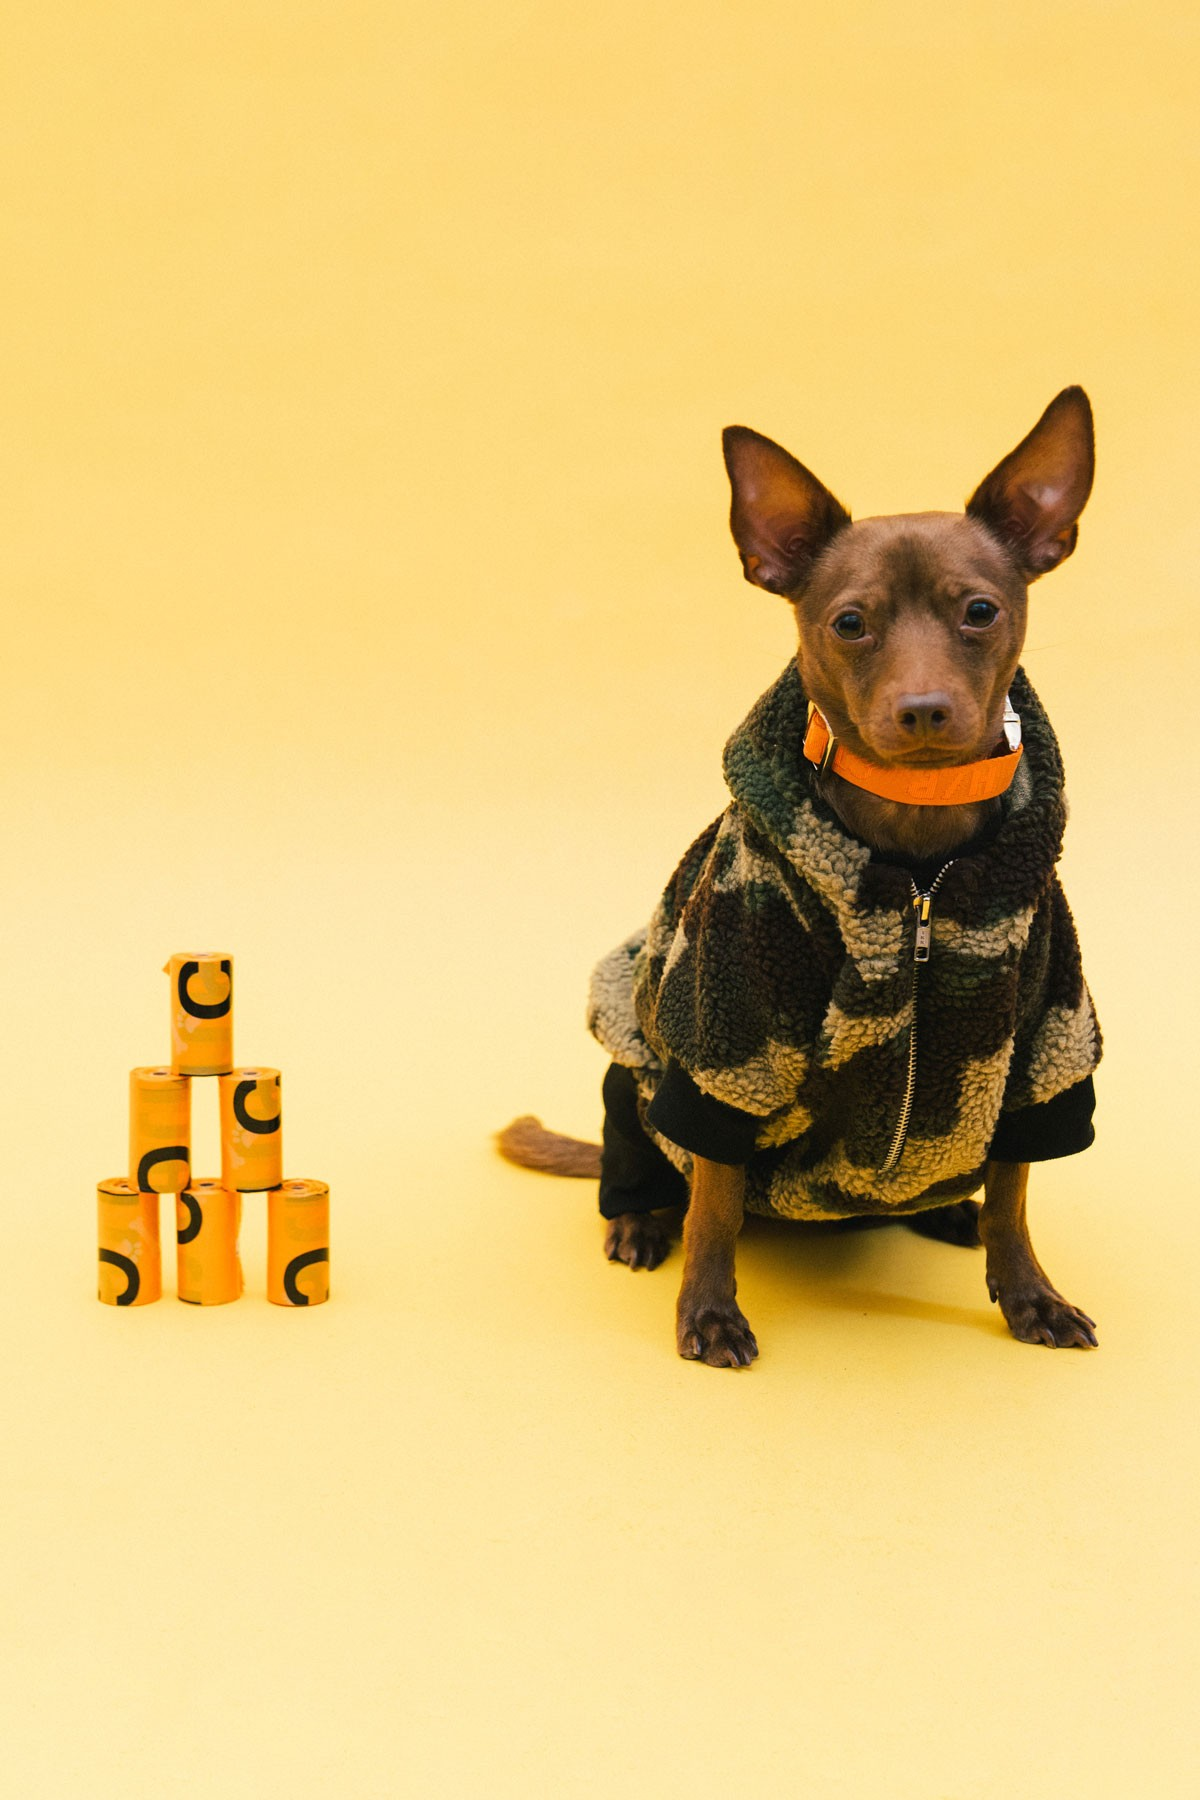 Sweater for Pets Dog Pet Sweaters for Dogs Small Dog Sweater Small Dog Clothes Small Dog Outfit Small Dog Pink Camo Small Dog Outfit